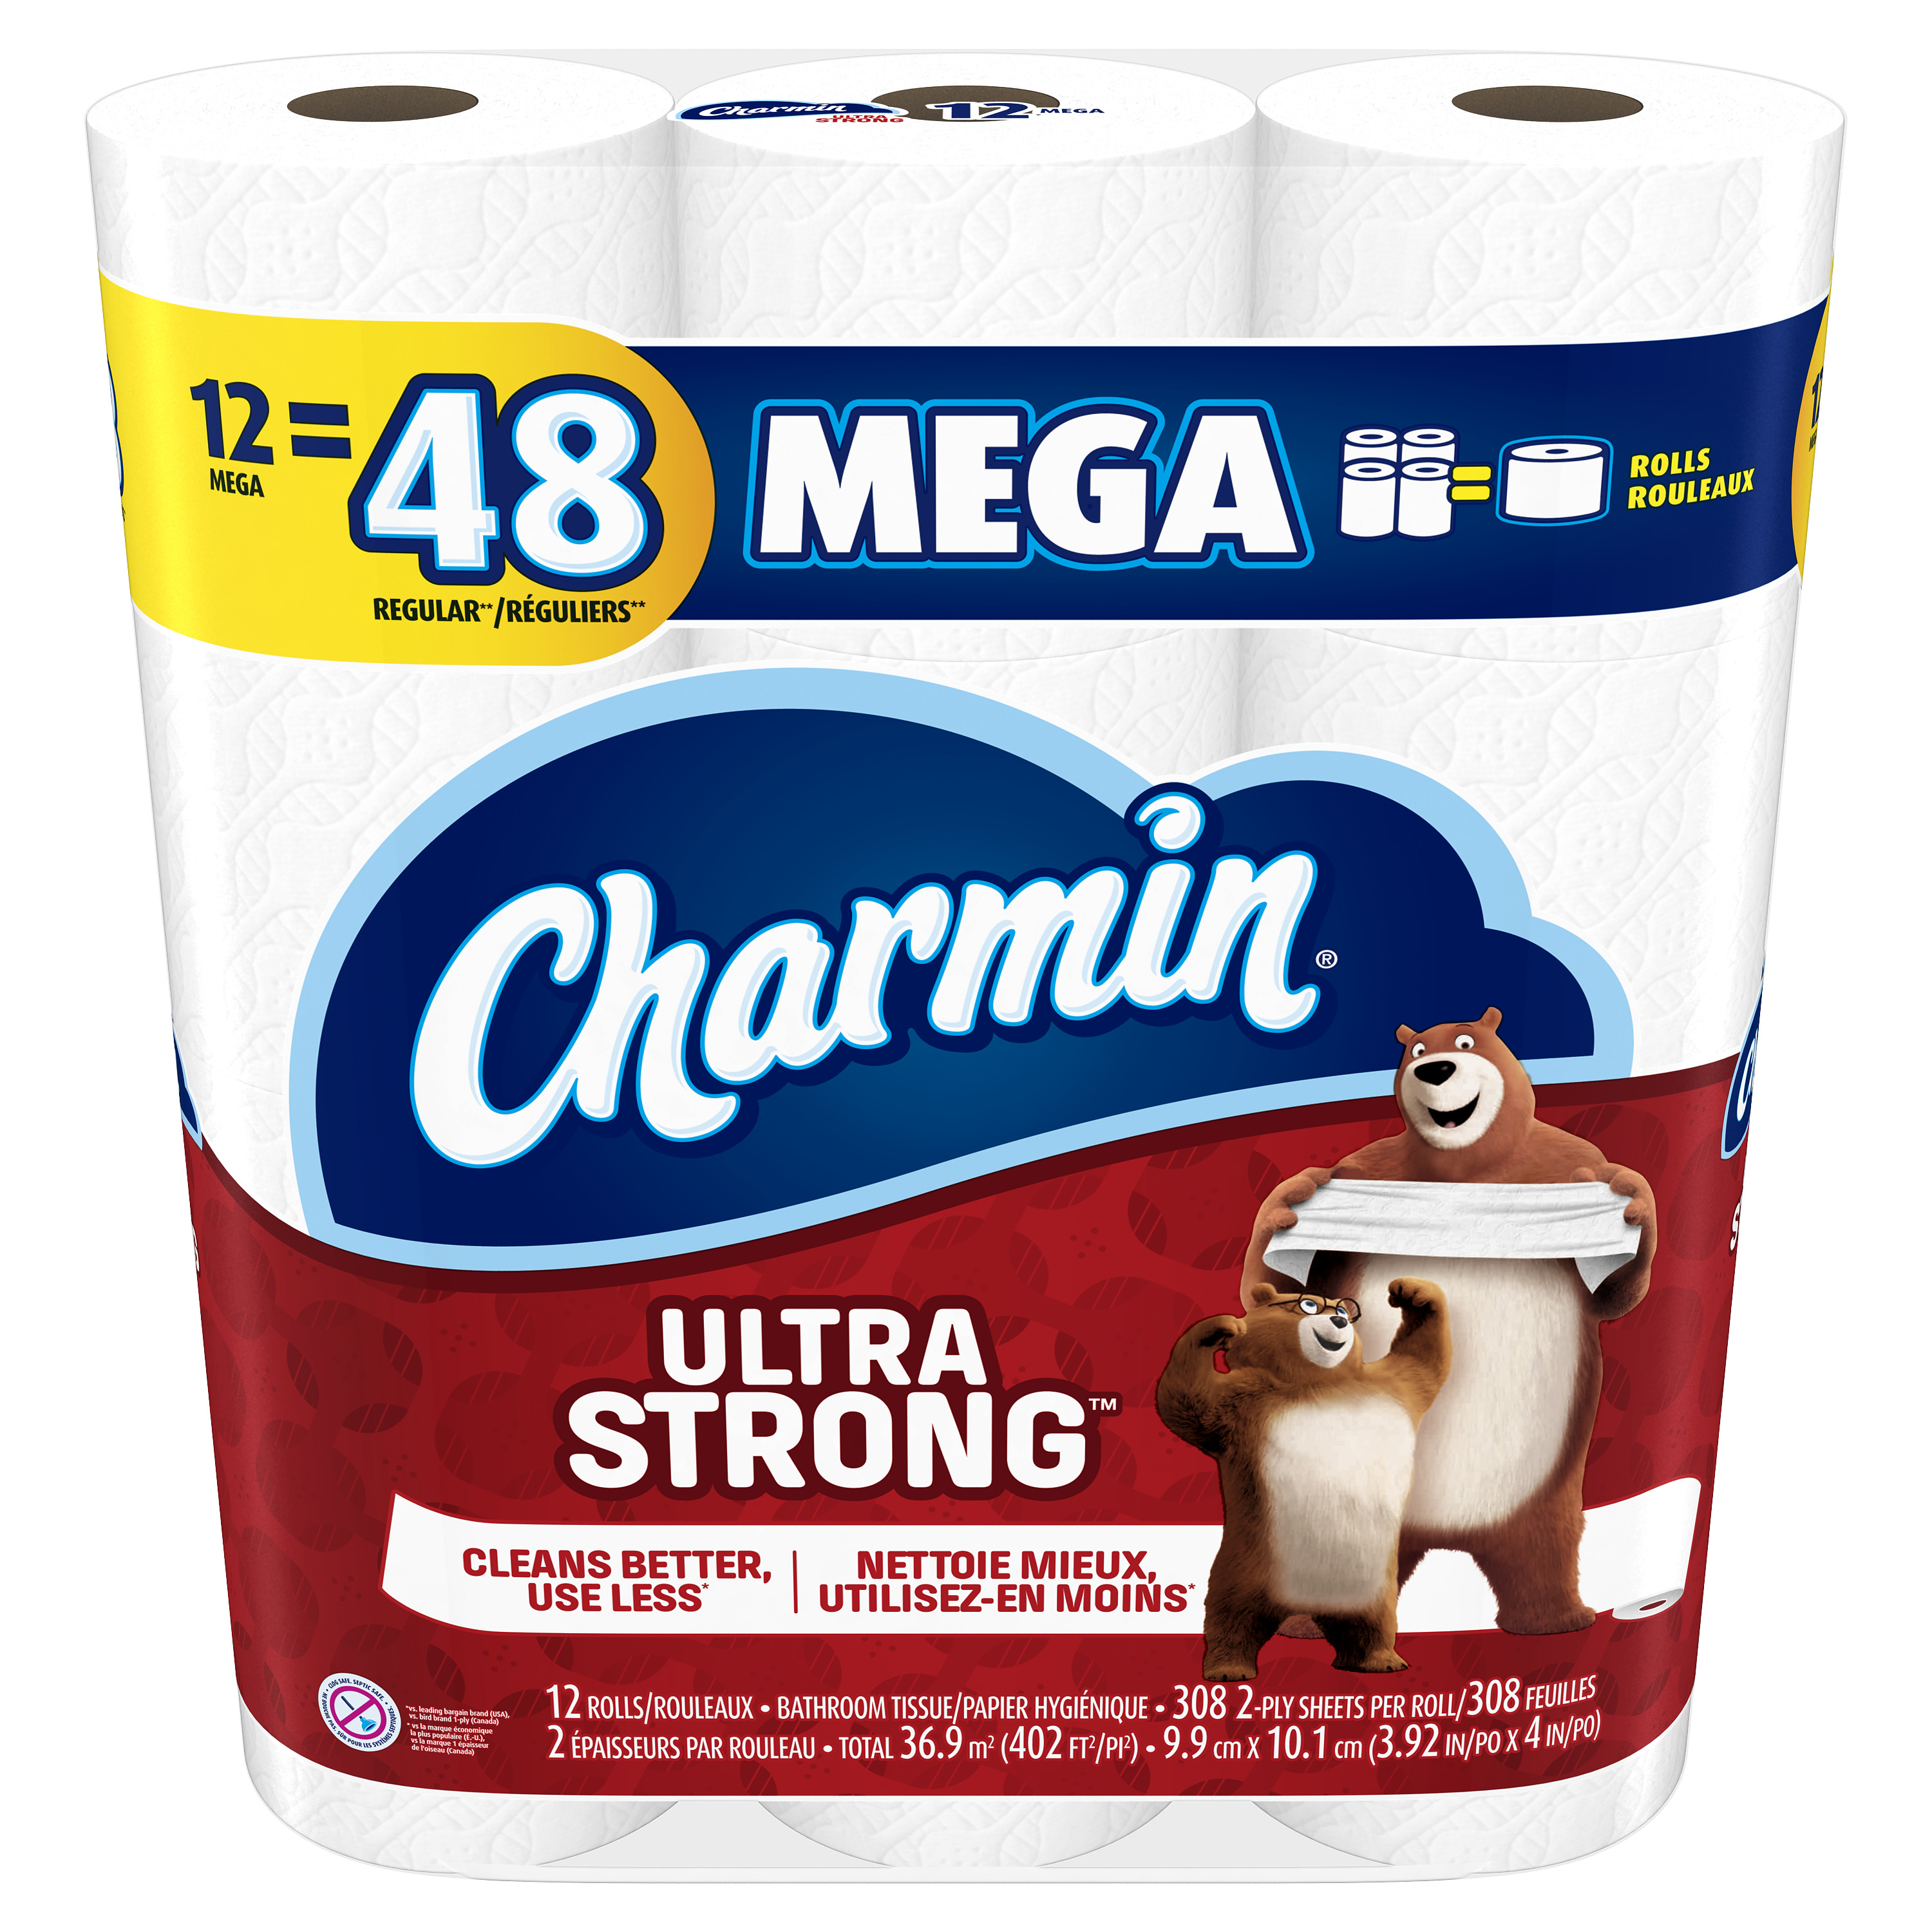 Charmin Ultra Strong Toilet Paper 12 Mega Rolls